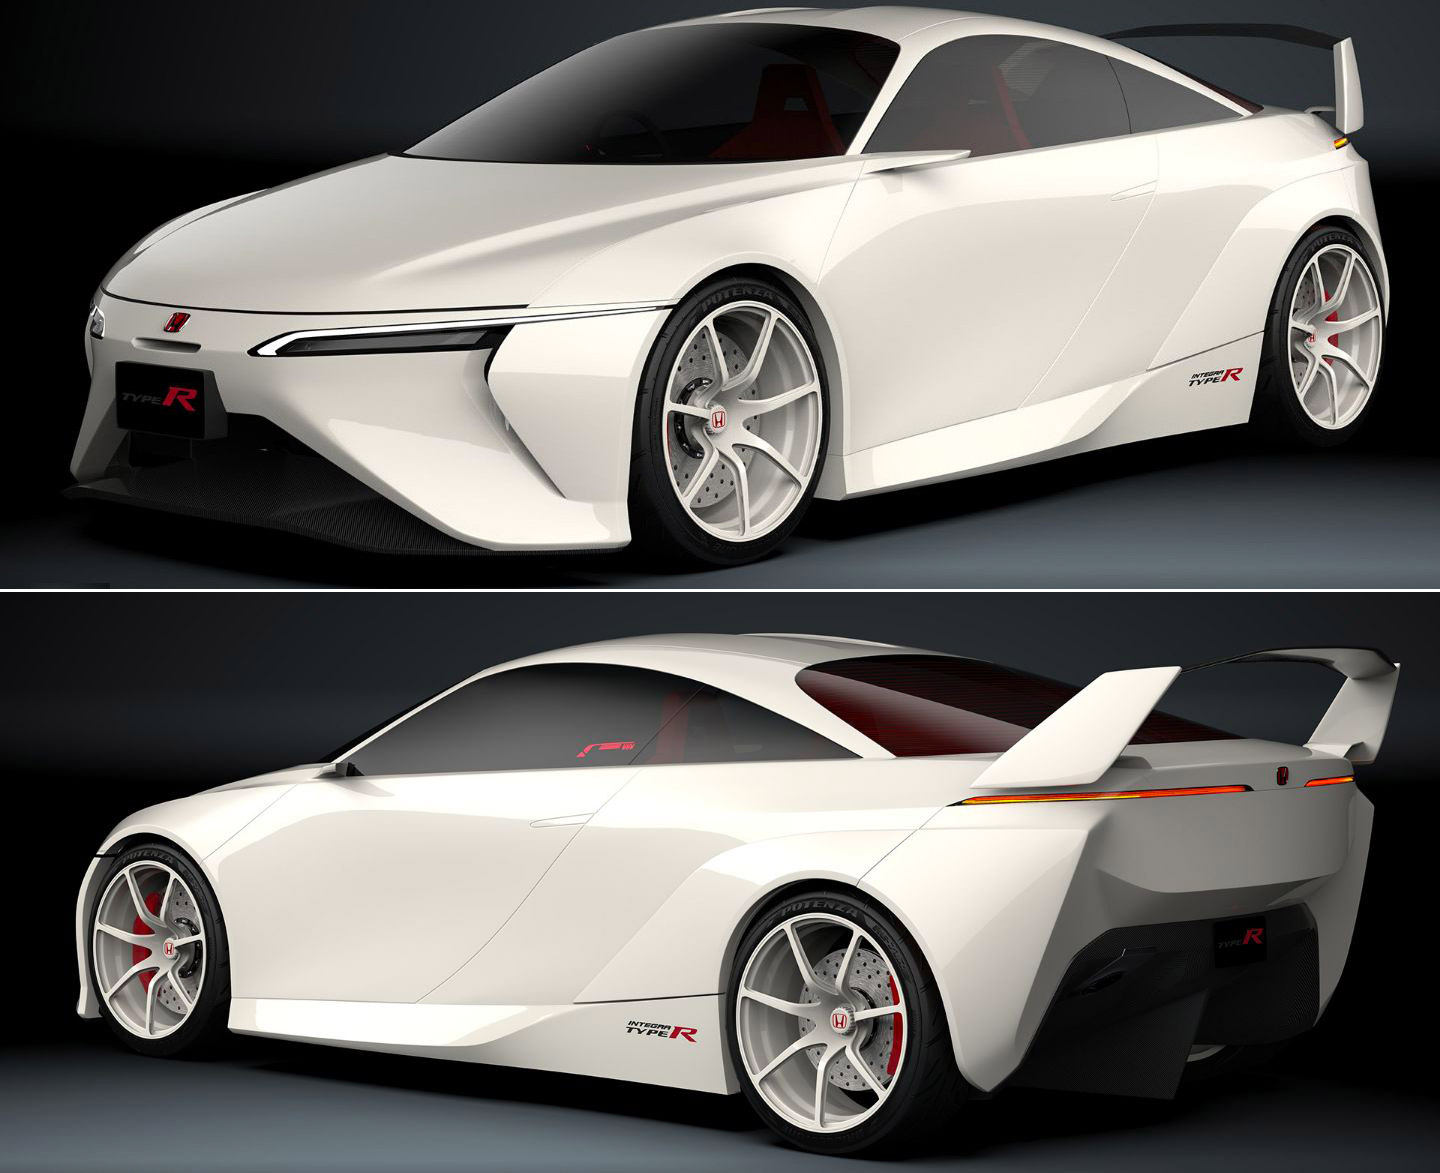 If Honda Made A 2022 Integra Type R This Is What It Could Look Like Techeblog